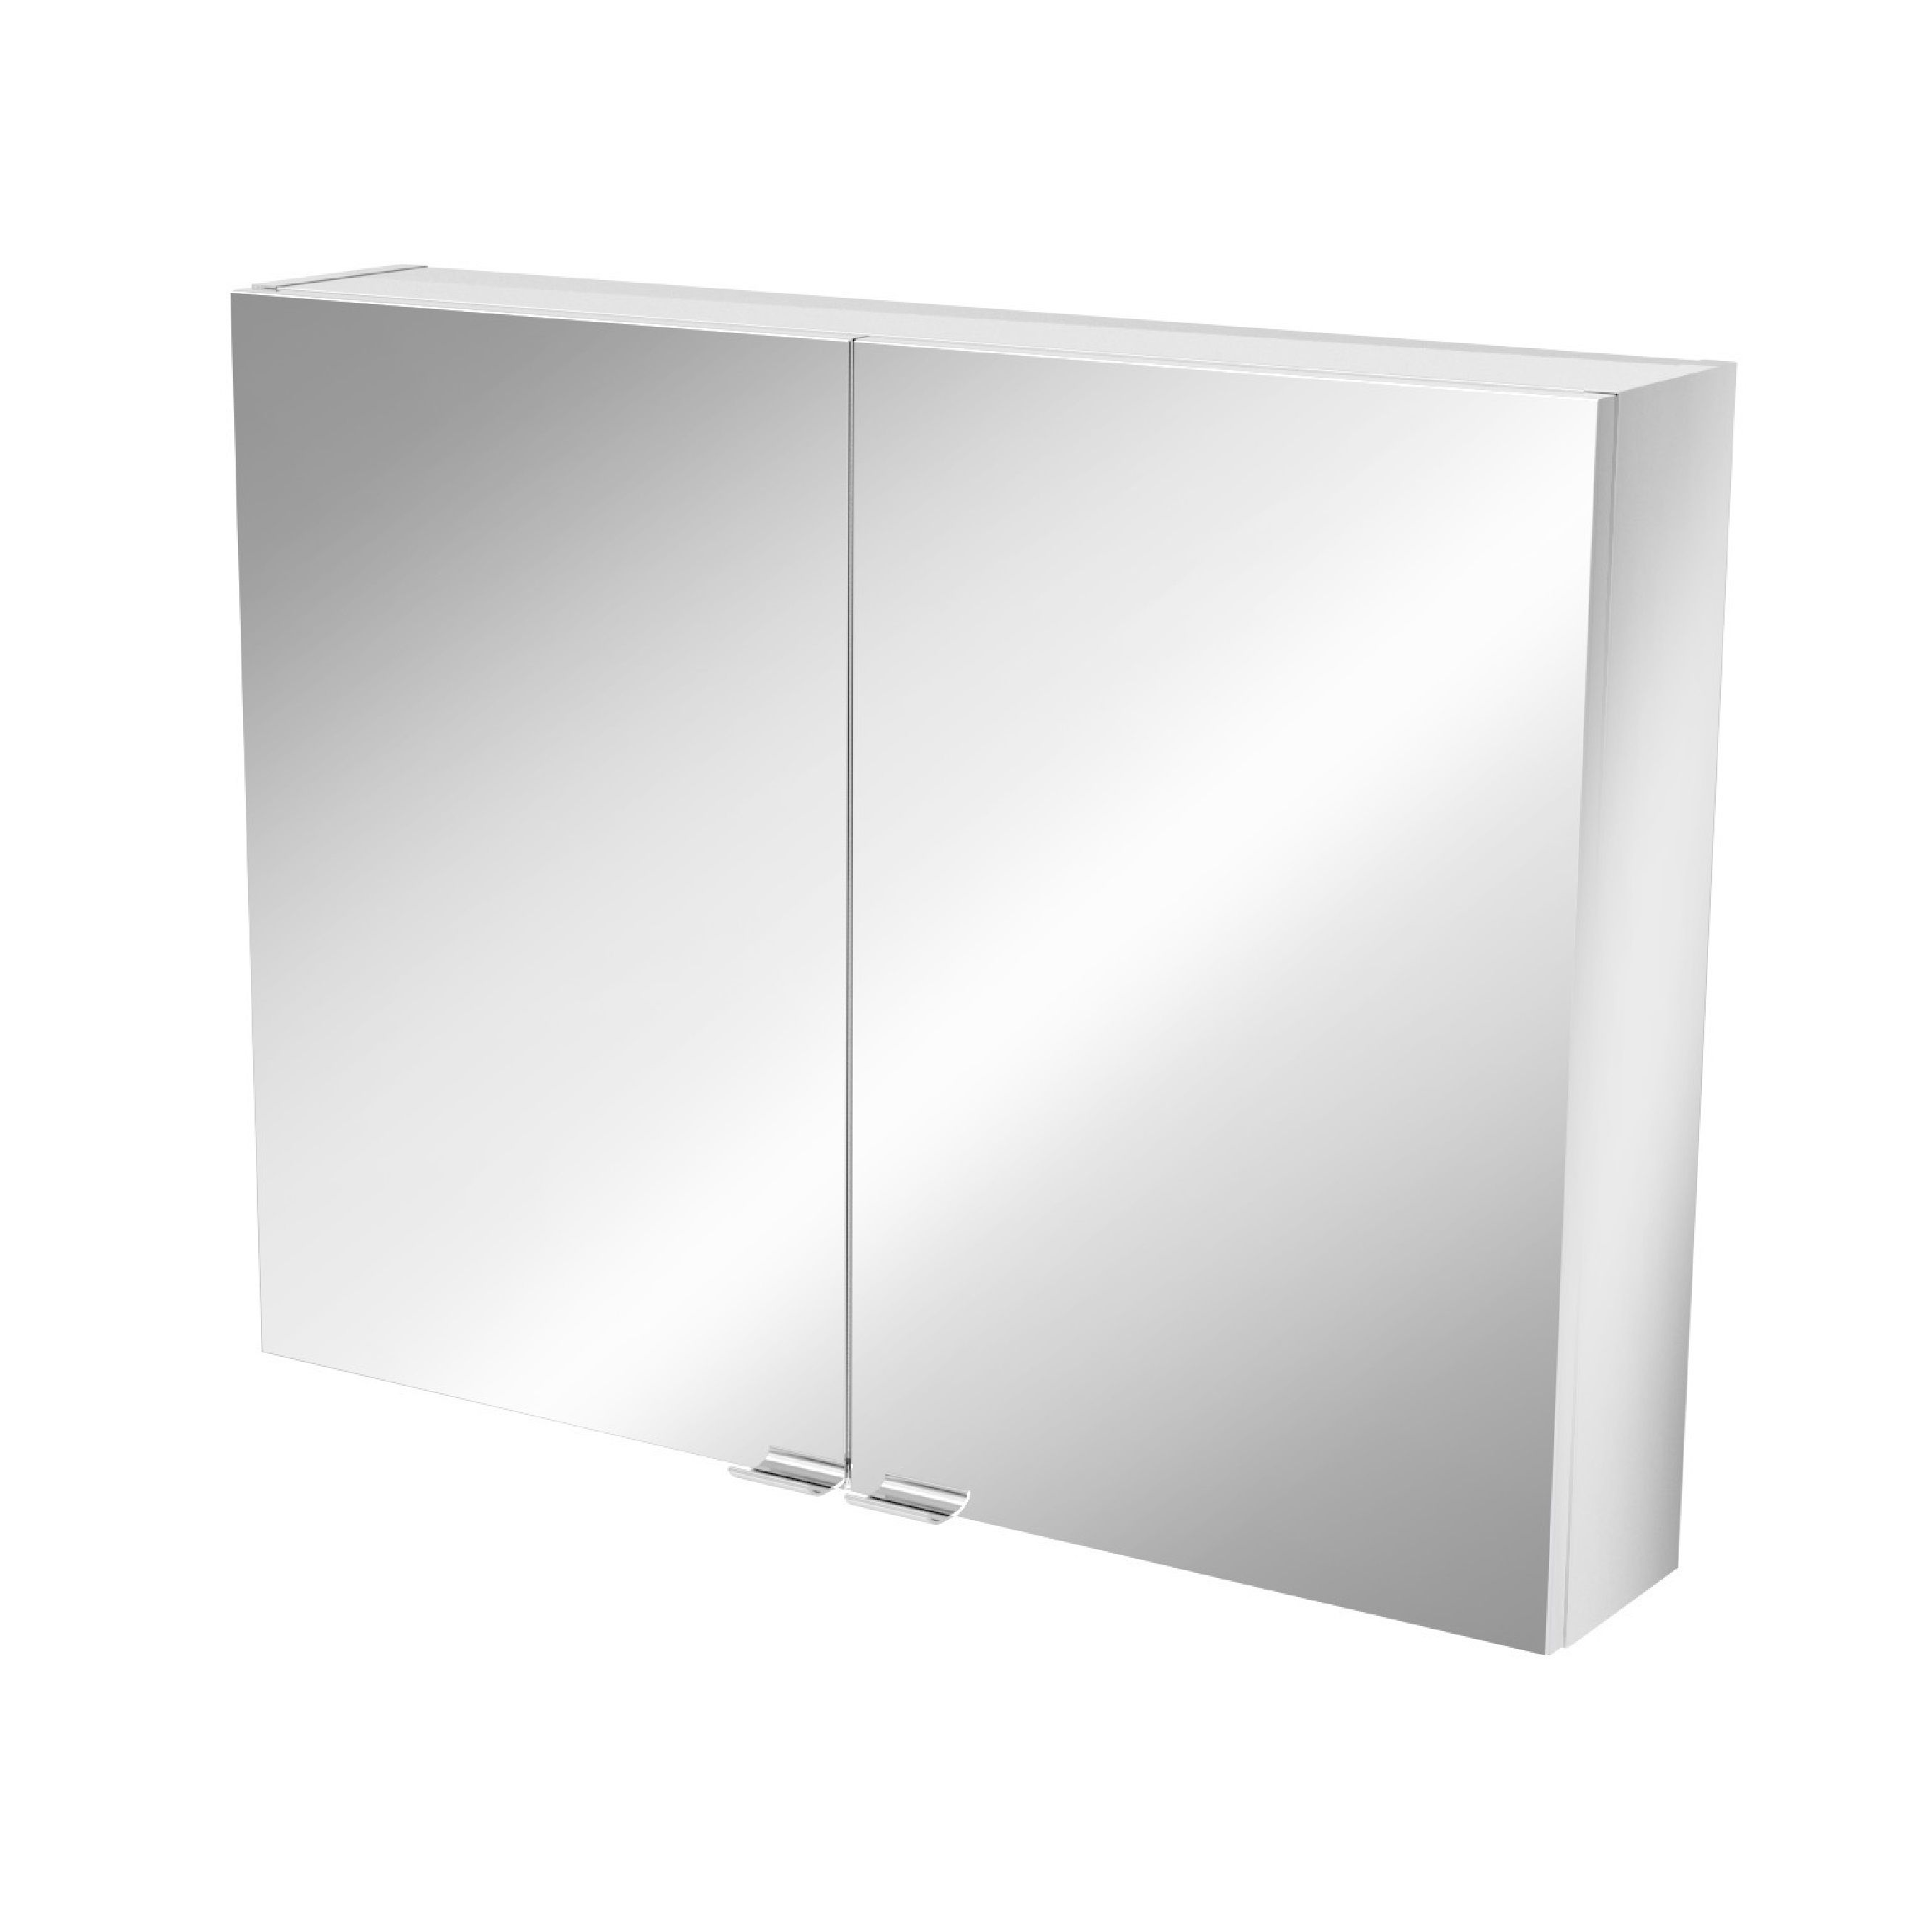 Cooke & Lewis Imandra Short Mirrored Wall Cabinet, (w)800mm